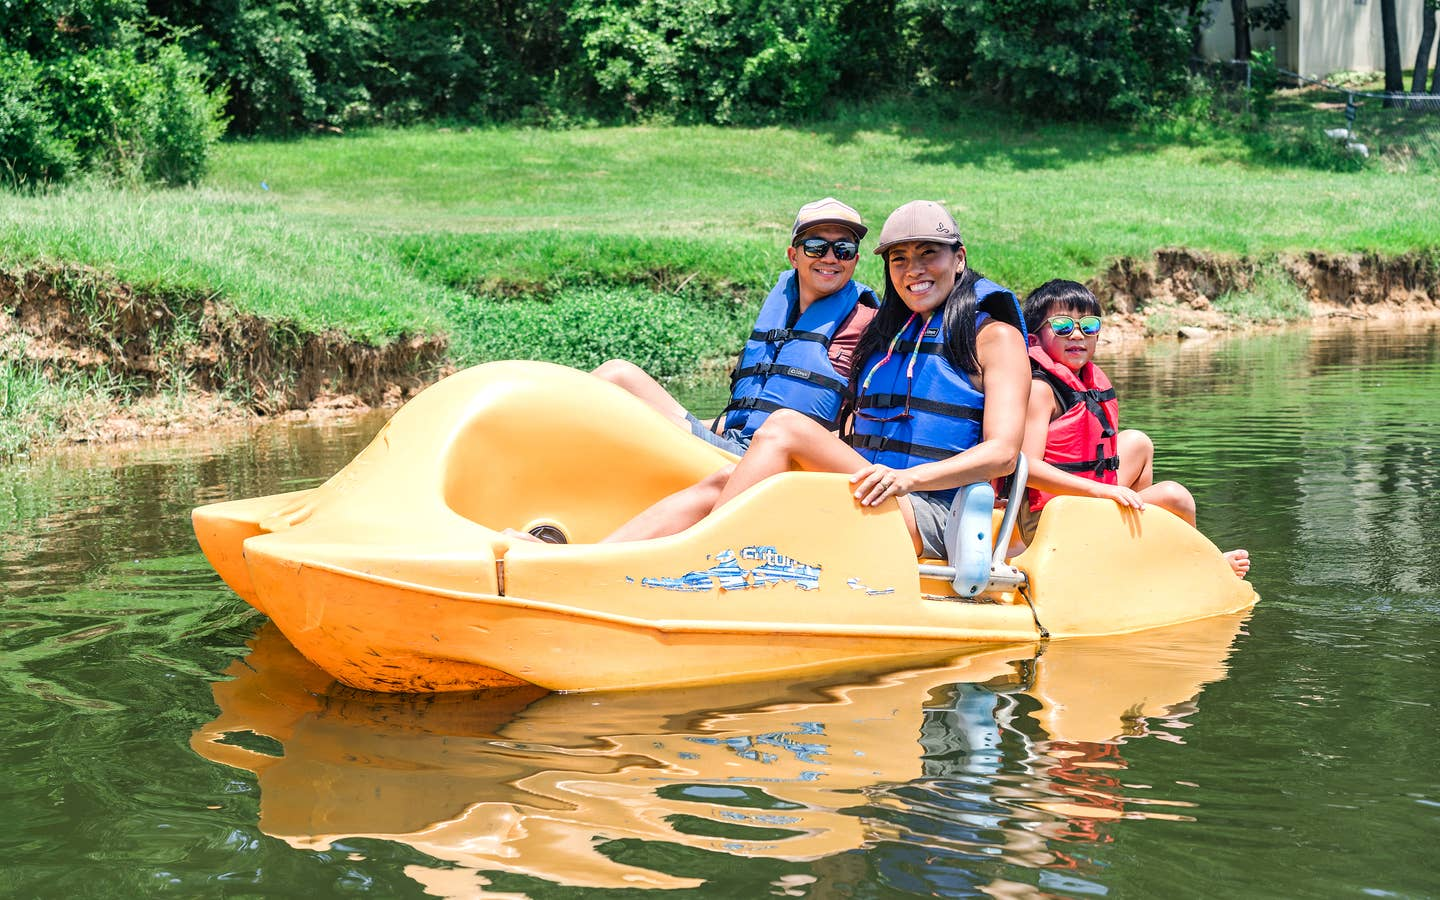 An Asian Male (left), female (middle) and young child (right) wear blue life vests, sunglasses and various hats while riding on a yellow paddleboat in a lake.